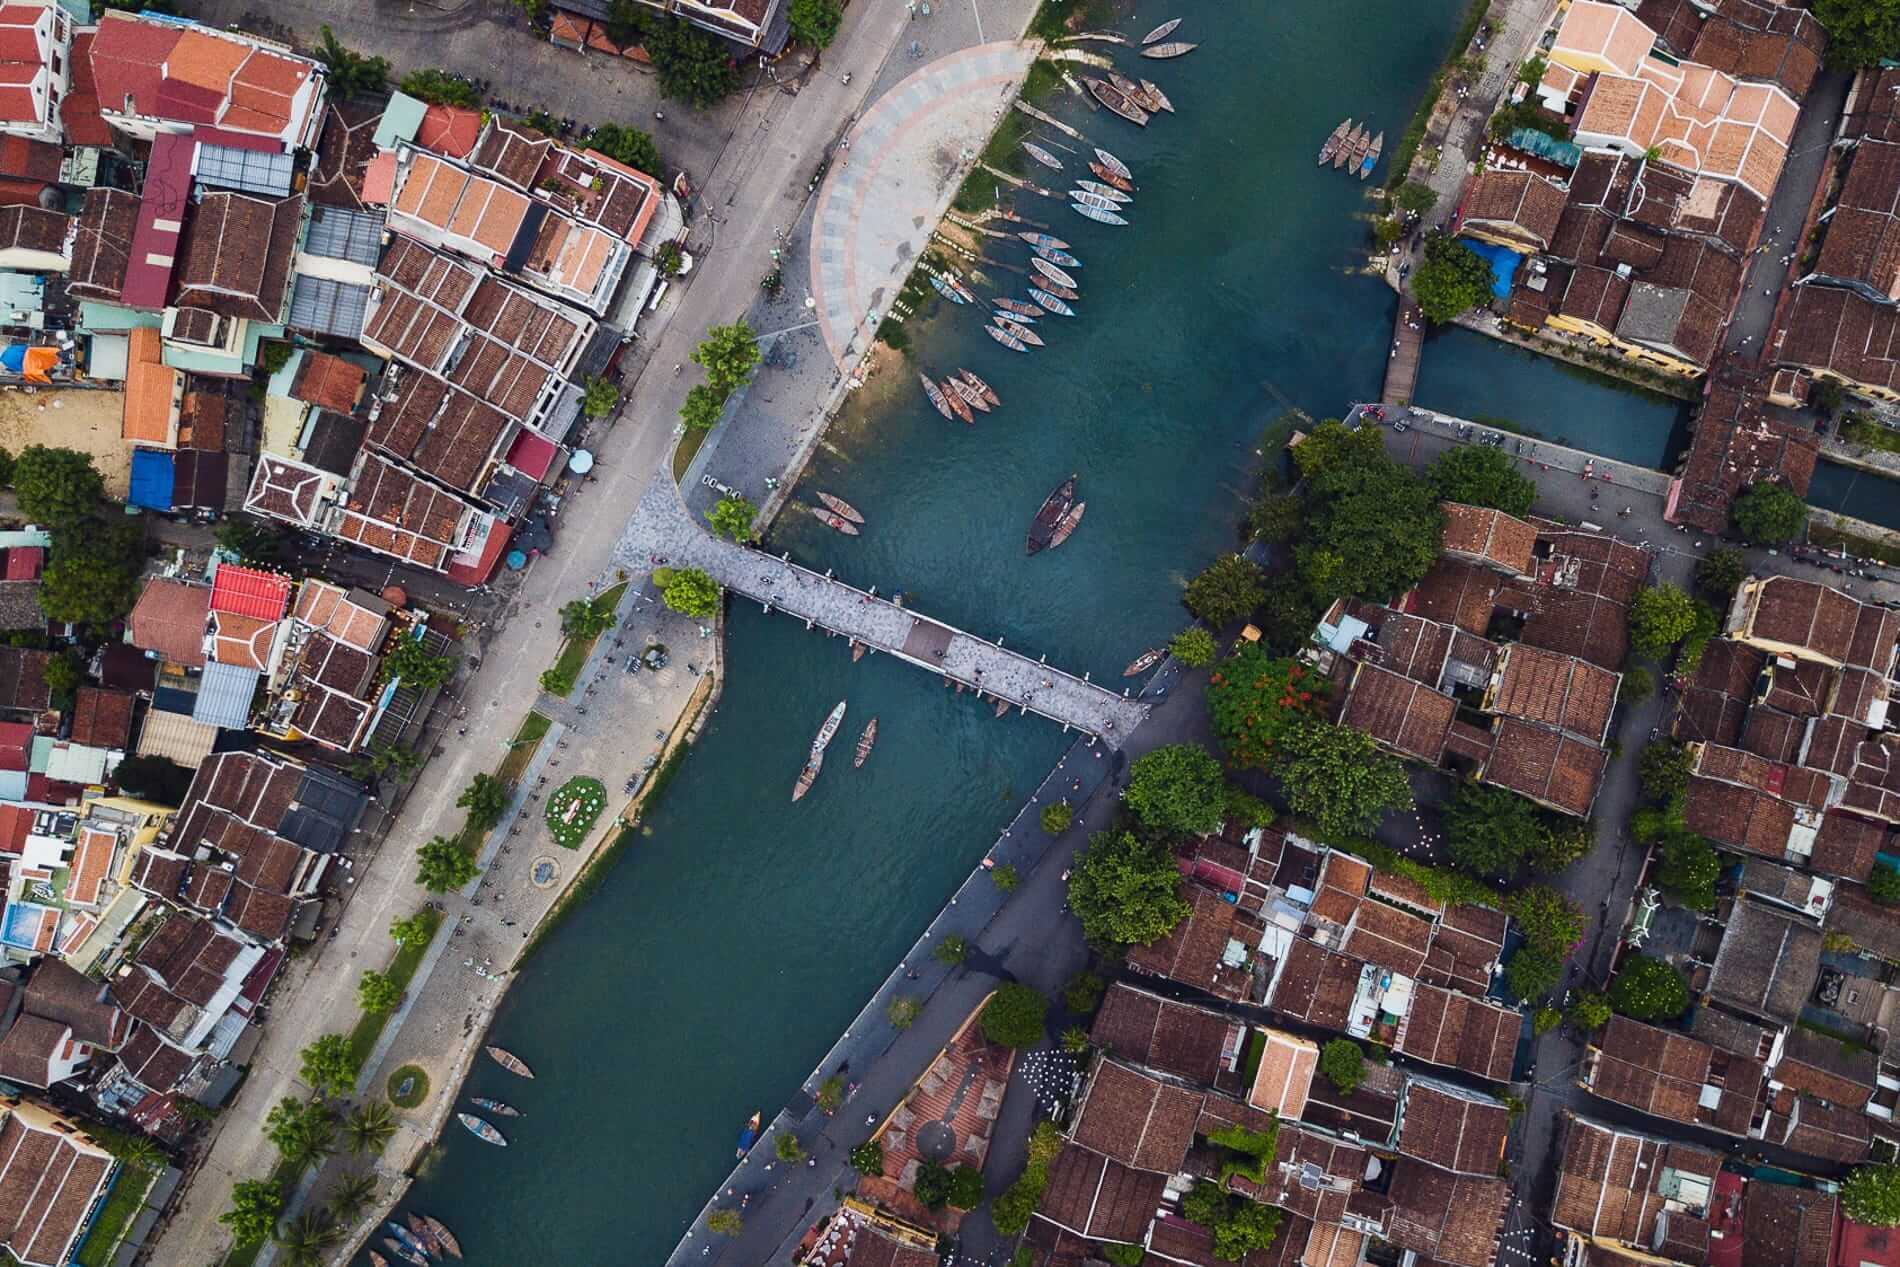 Hoi An Ancient Town seen from above